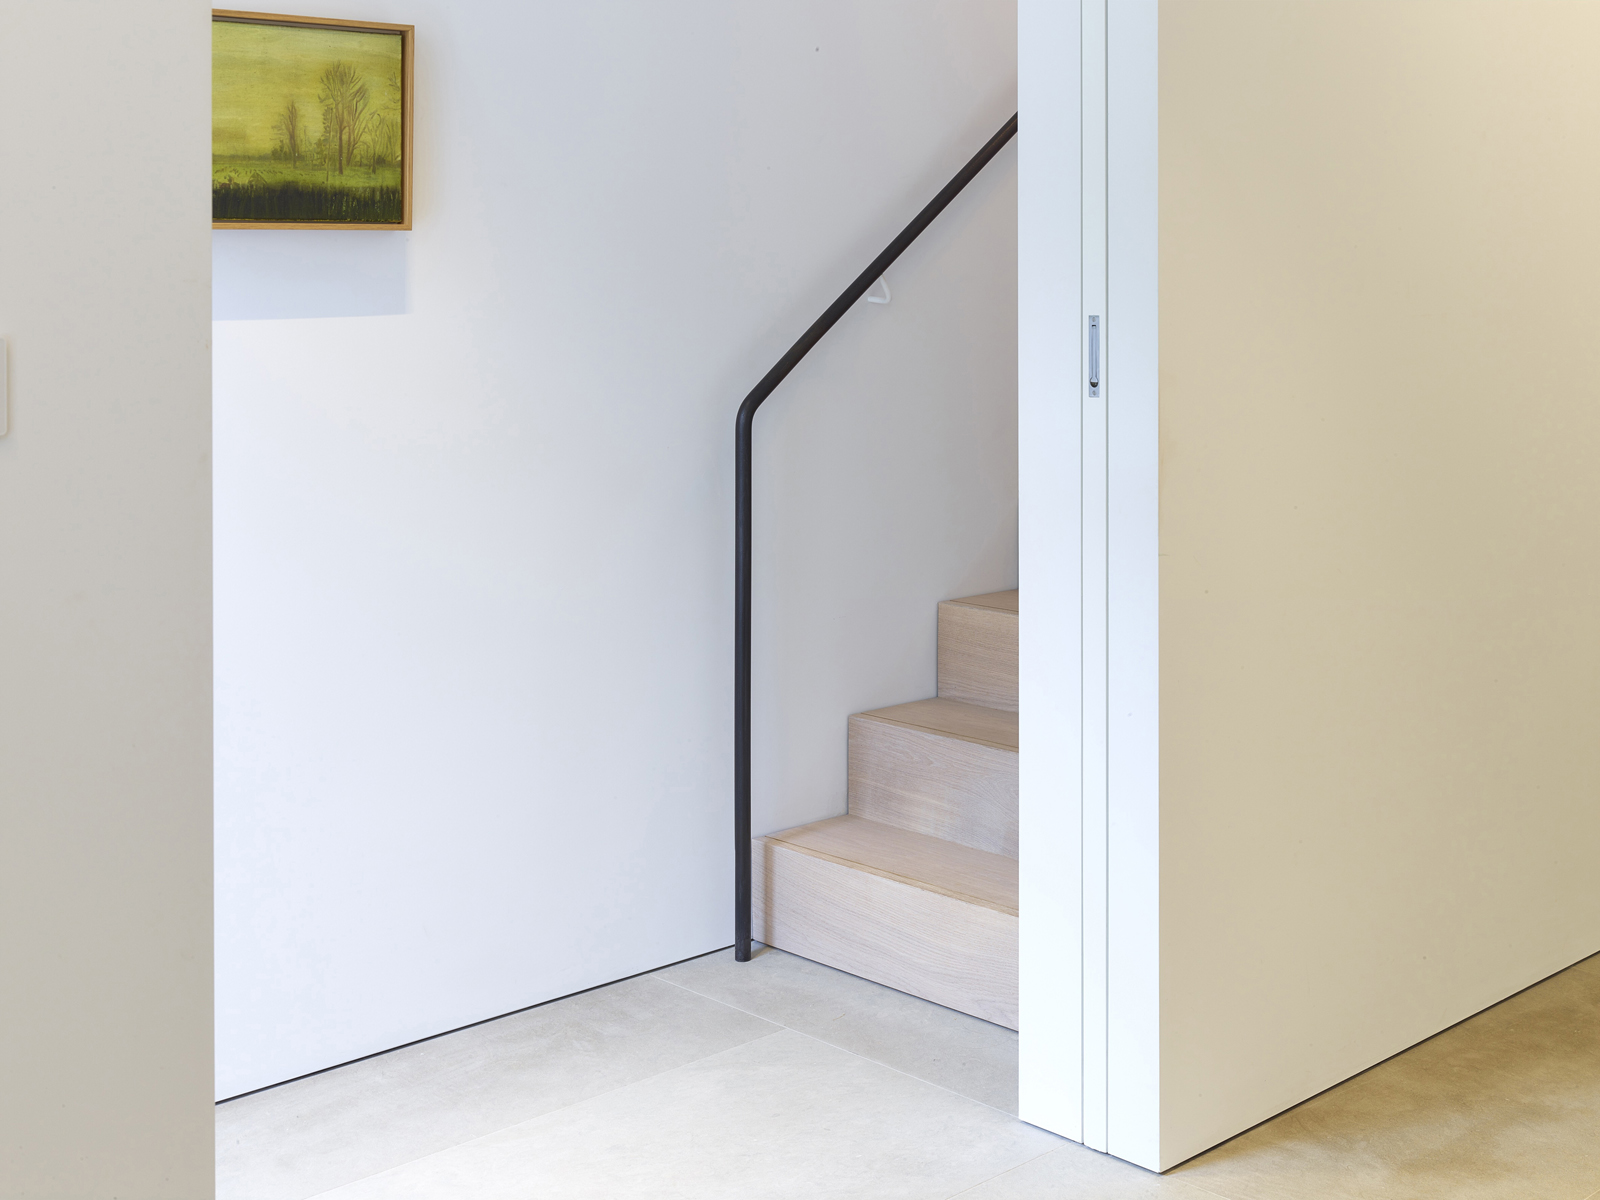 stair and sliding pocket door